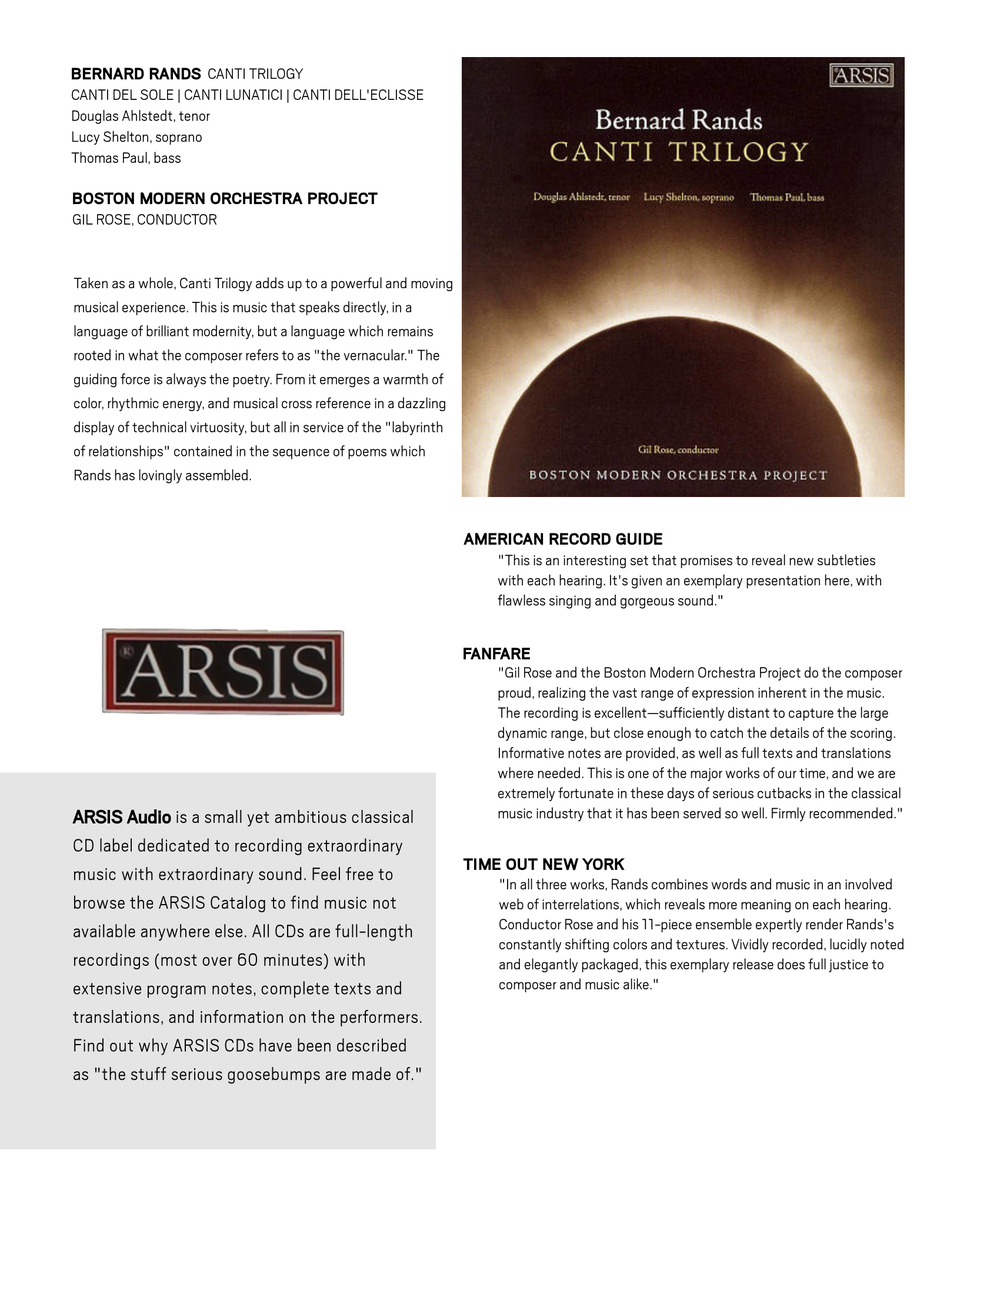 Rands - Arsis 156 one-sheet.png